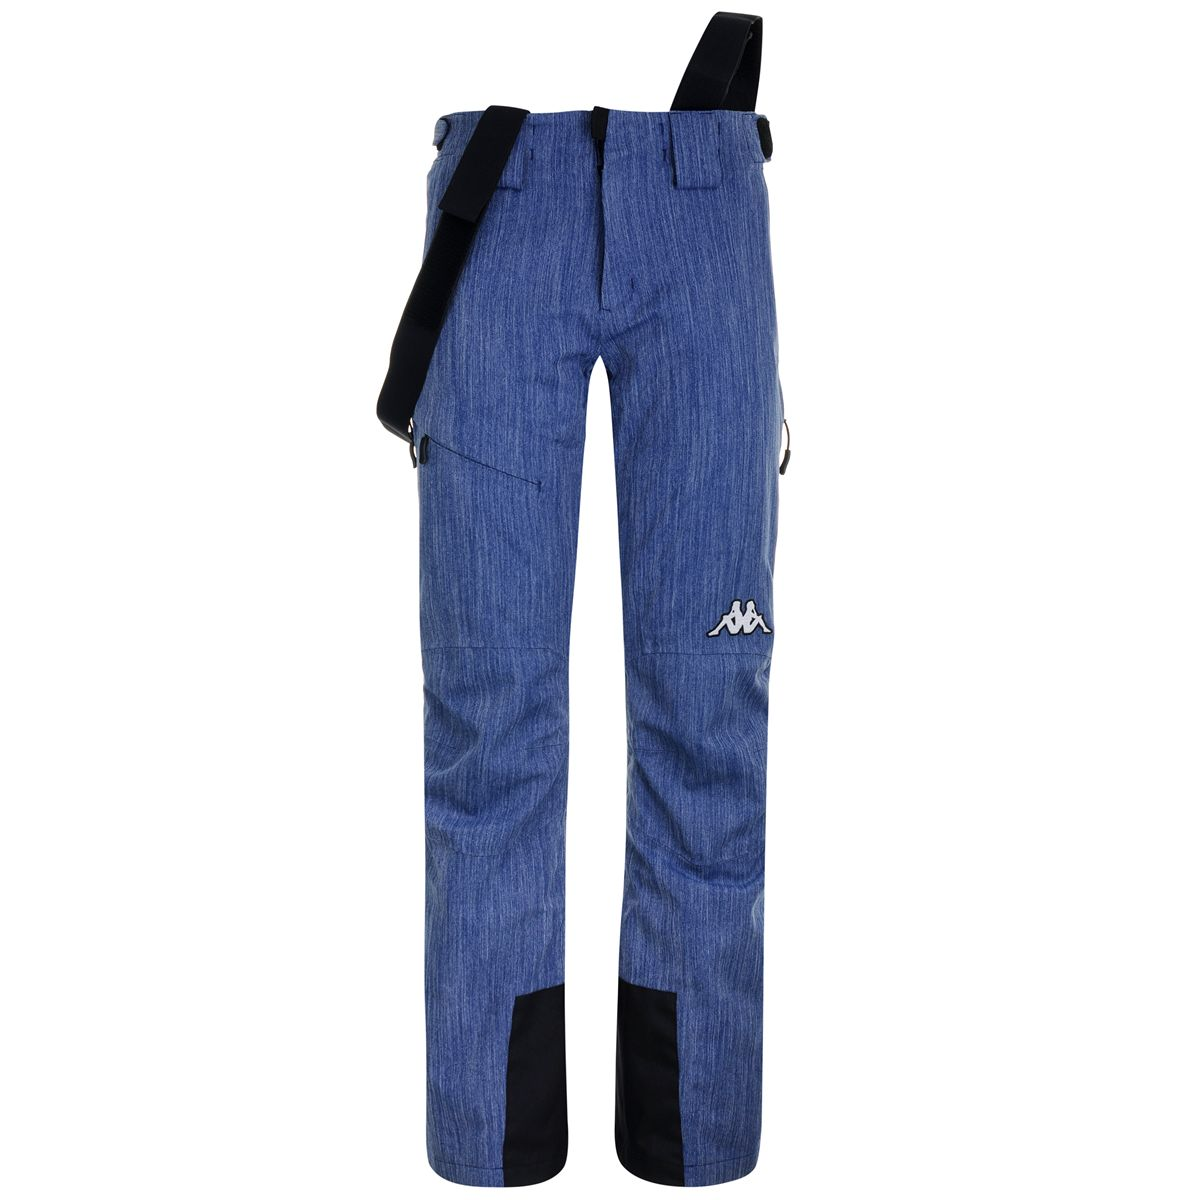 Kappa Pants 6CENTO 665A DENIM Woman Sport Trousers